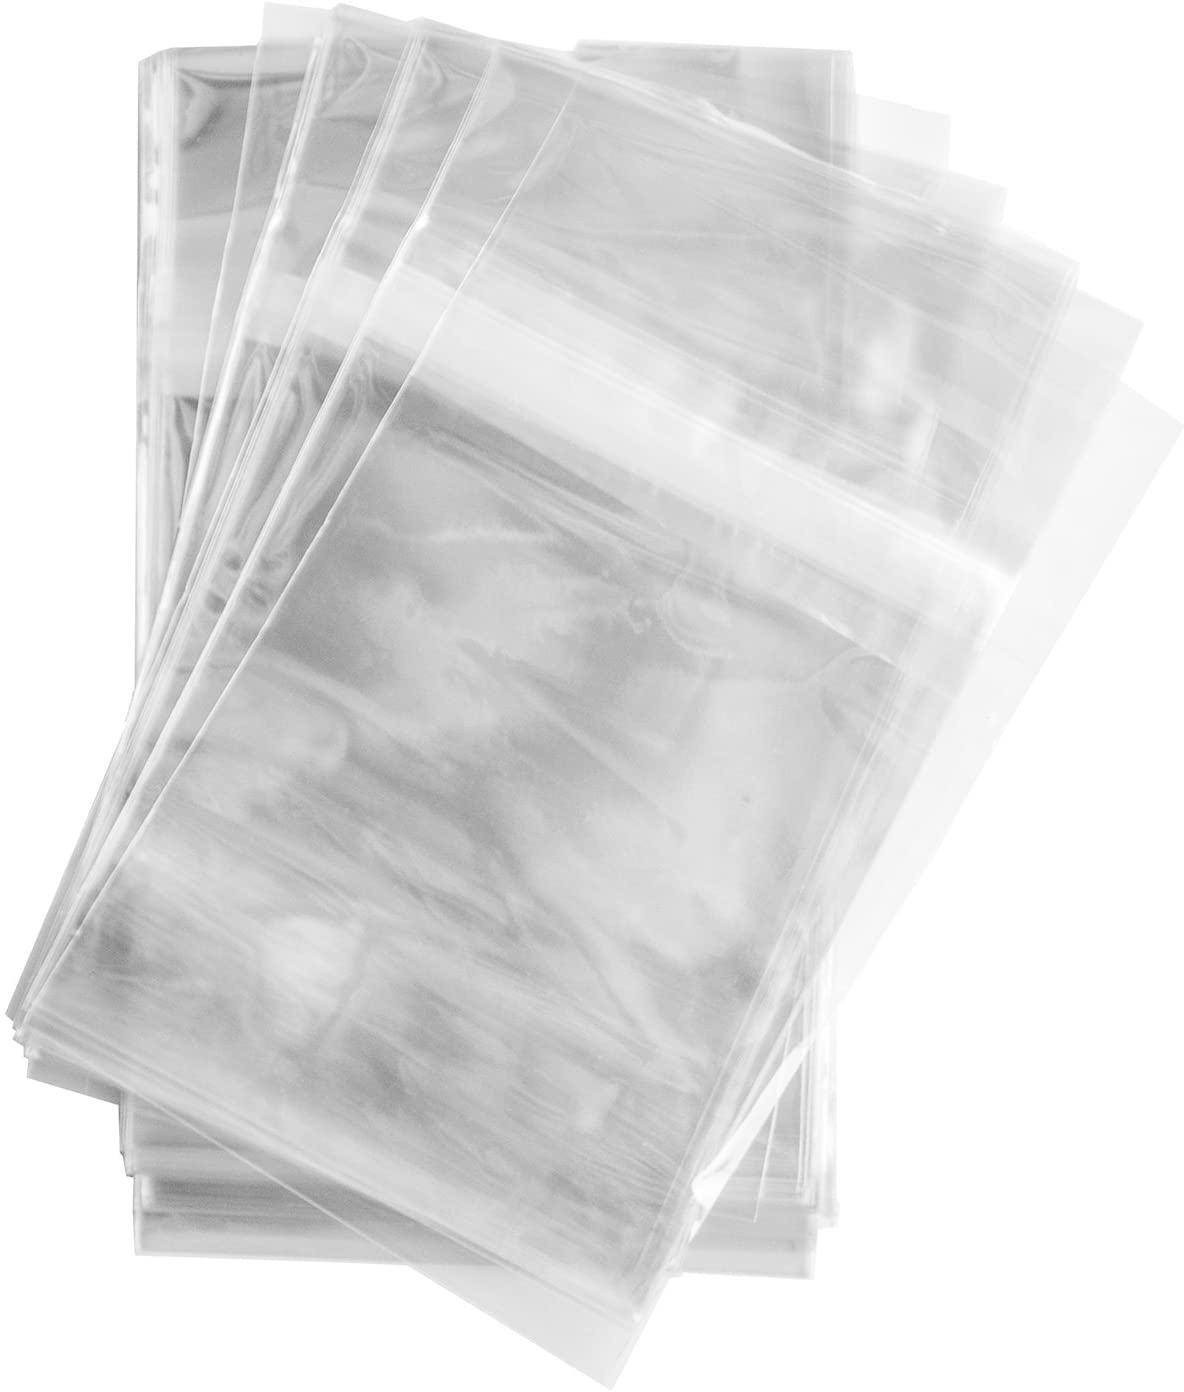 200 Pcs 7 3//8 x 10 1//2 Resealable COMIC BOOK sleeves bags Tape on Bag